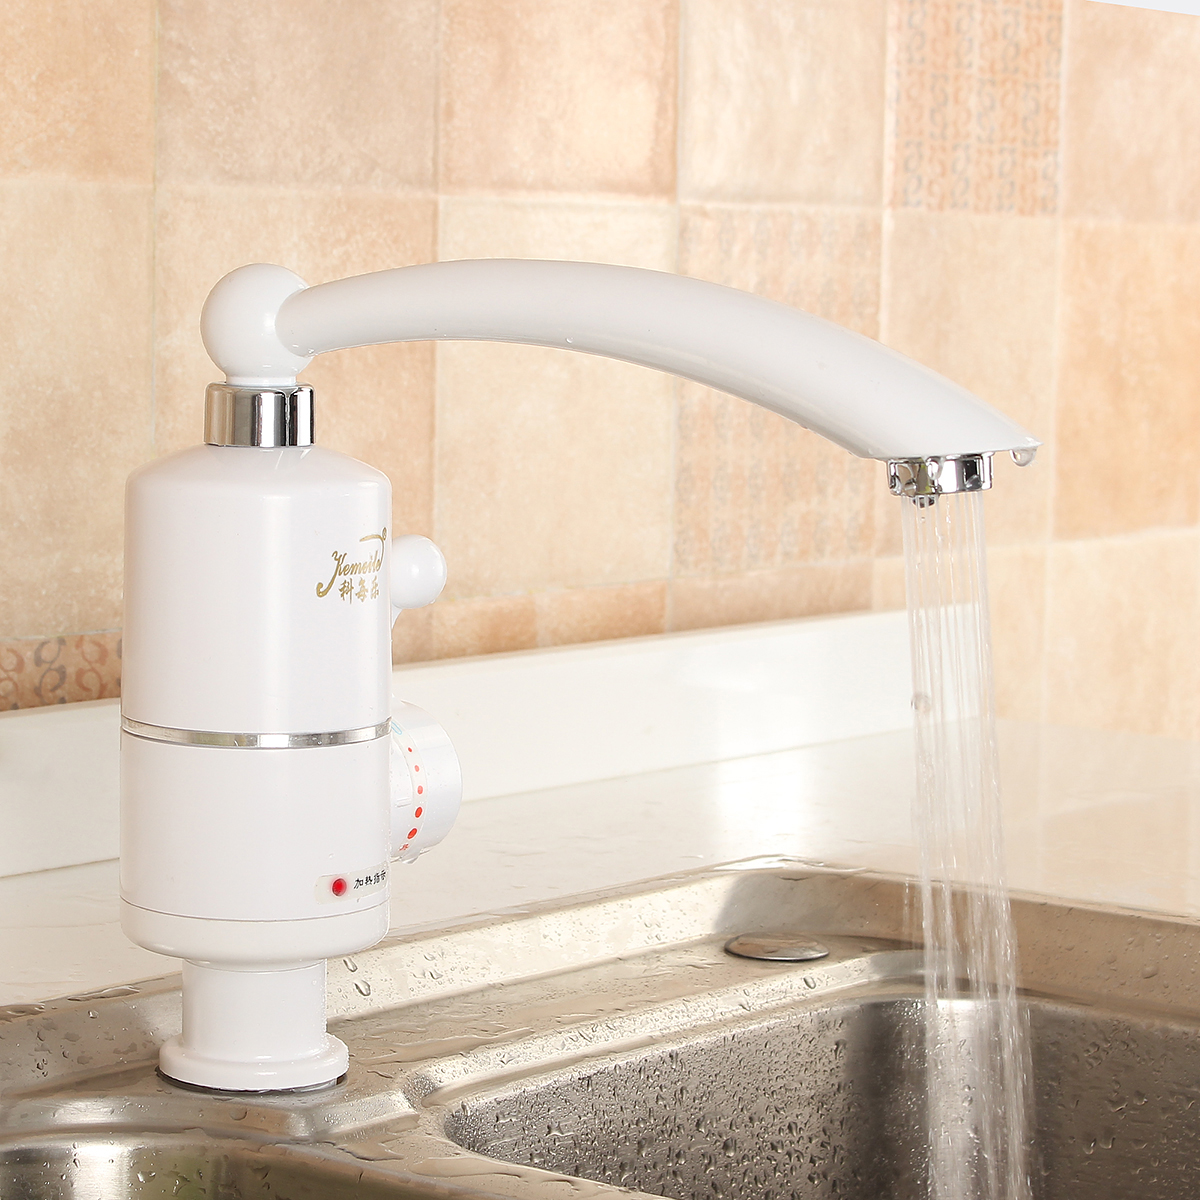 220V 2000W Tankless Electric Heating Tap Instant Electric Water Heater Faucet Tap